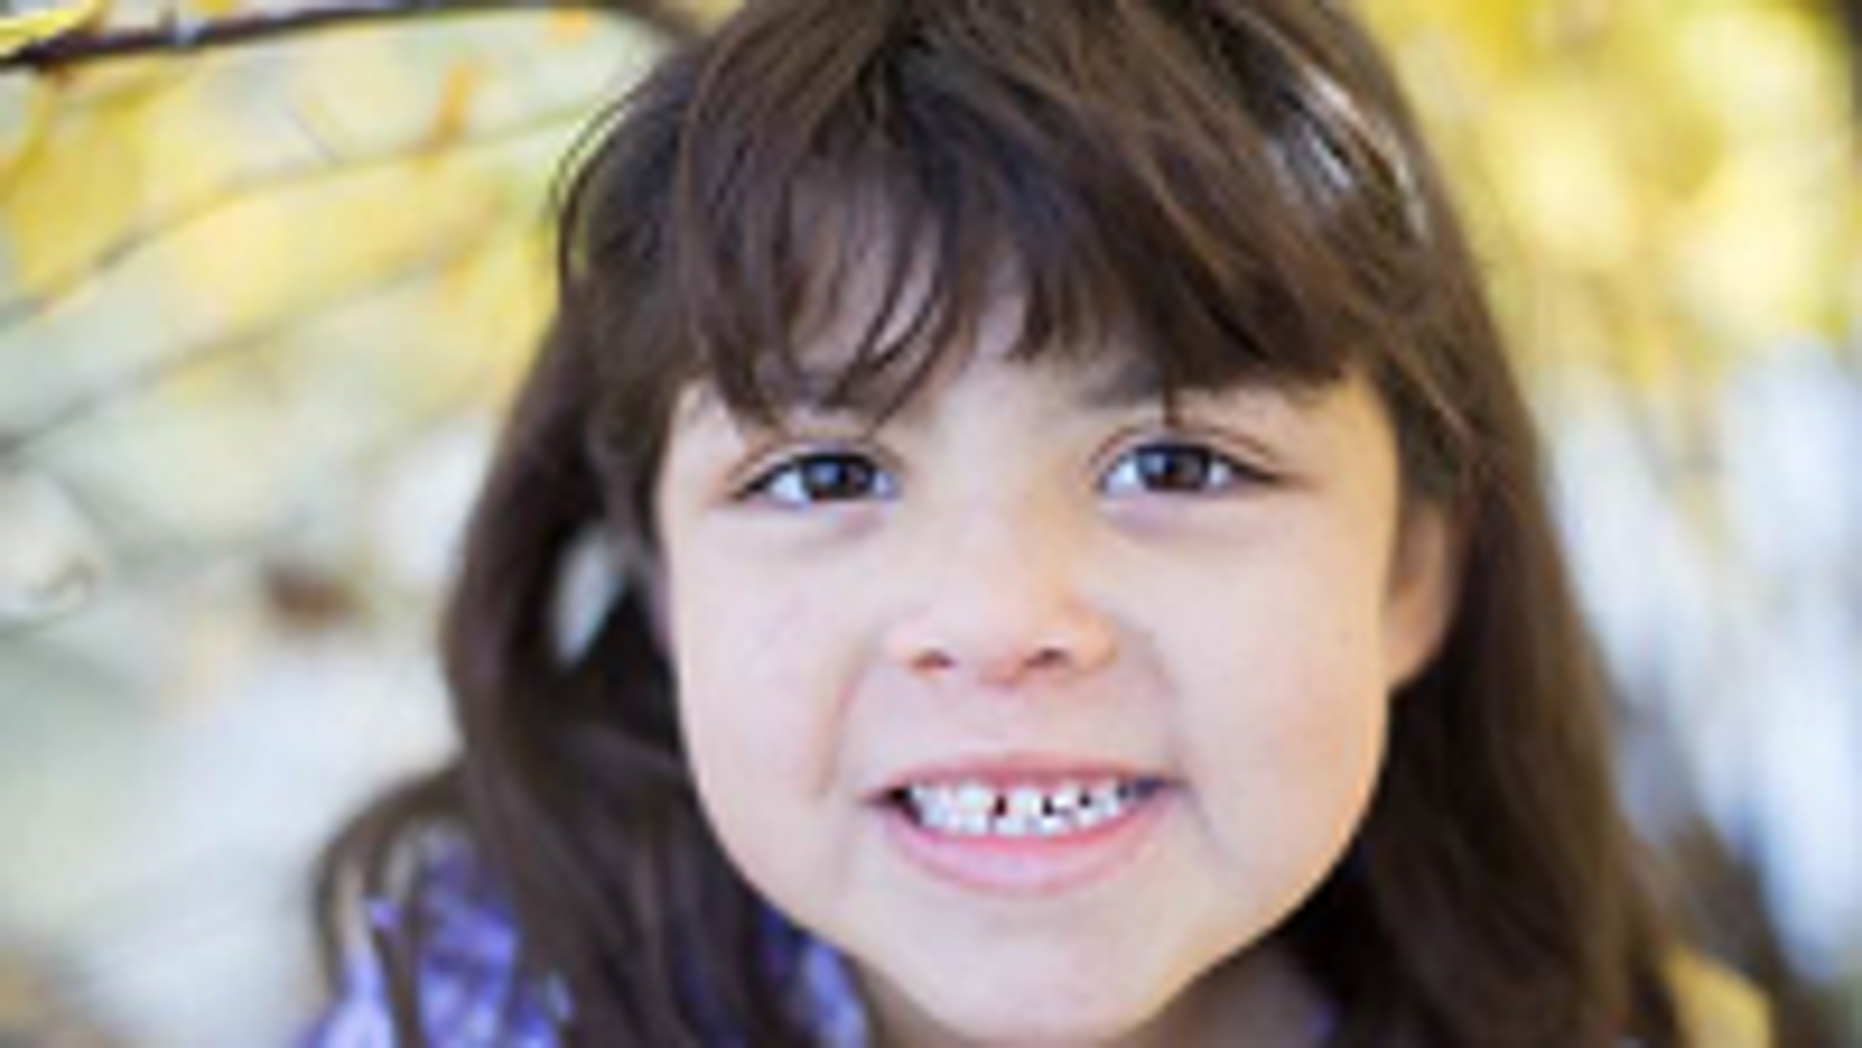 Six-year-old Eden Nunn was abducted by her mother last month. (KMSP Photo)